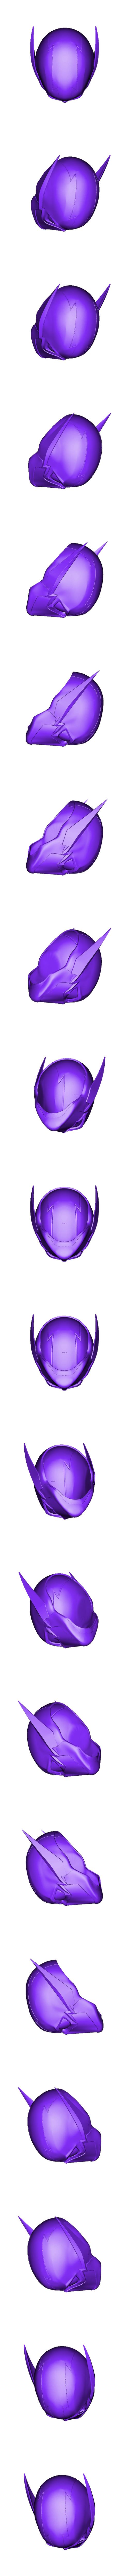 TheFlashCW-helmet-3d-print-file-by-do3d.obj Download free OBJ file FlashCW helmet • Object to 3D print, SanderDesign